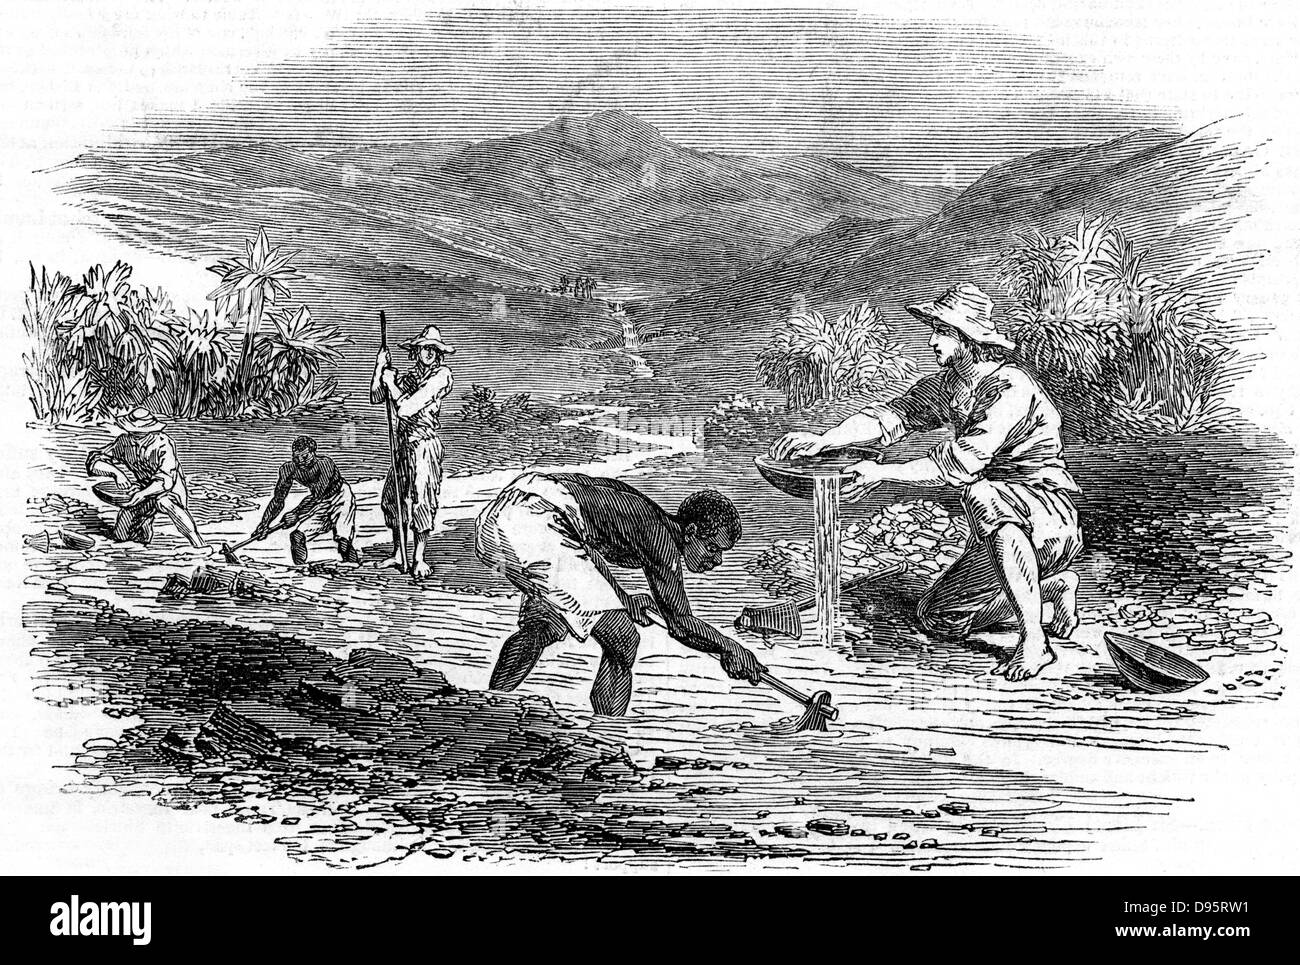 Panning for gold during the Californian Gold Rush of 1849. From 'The Illustrated London News' 6 January - Stock Image